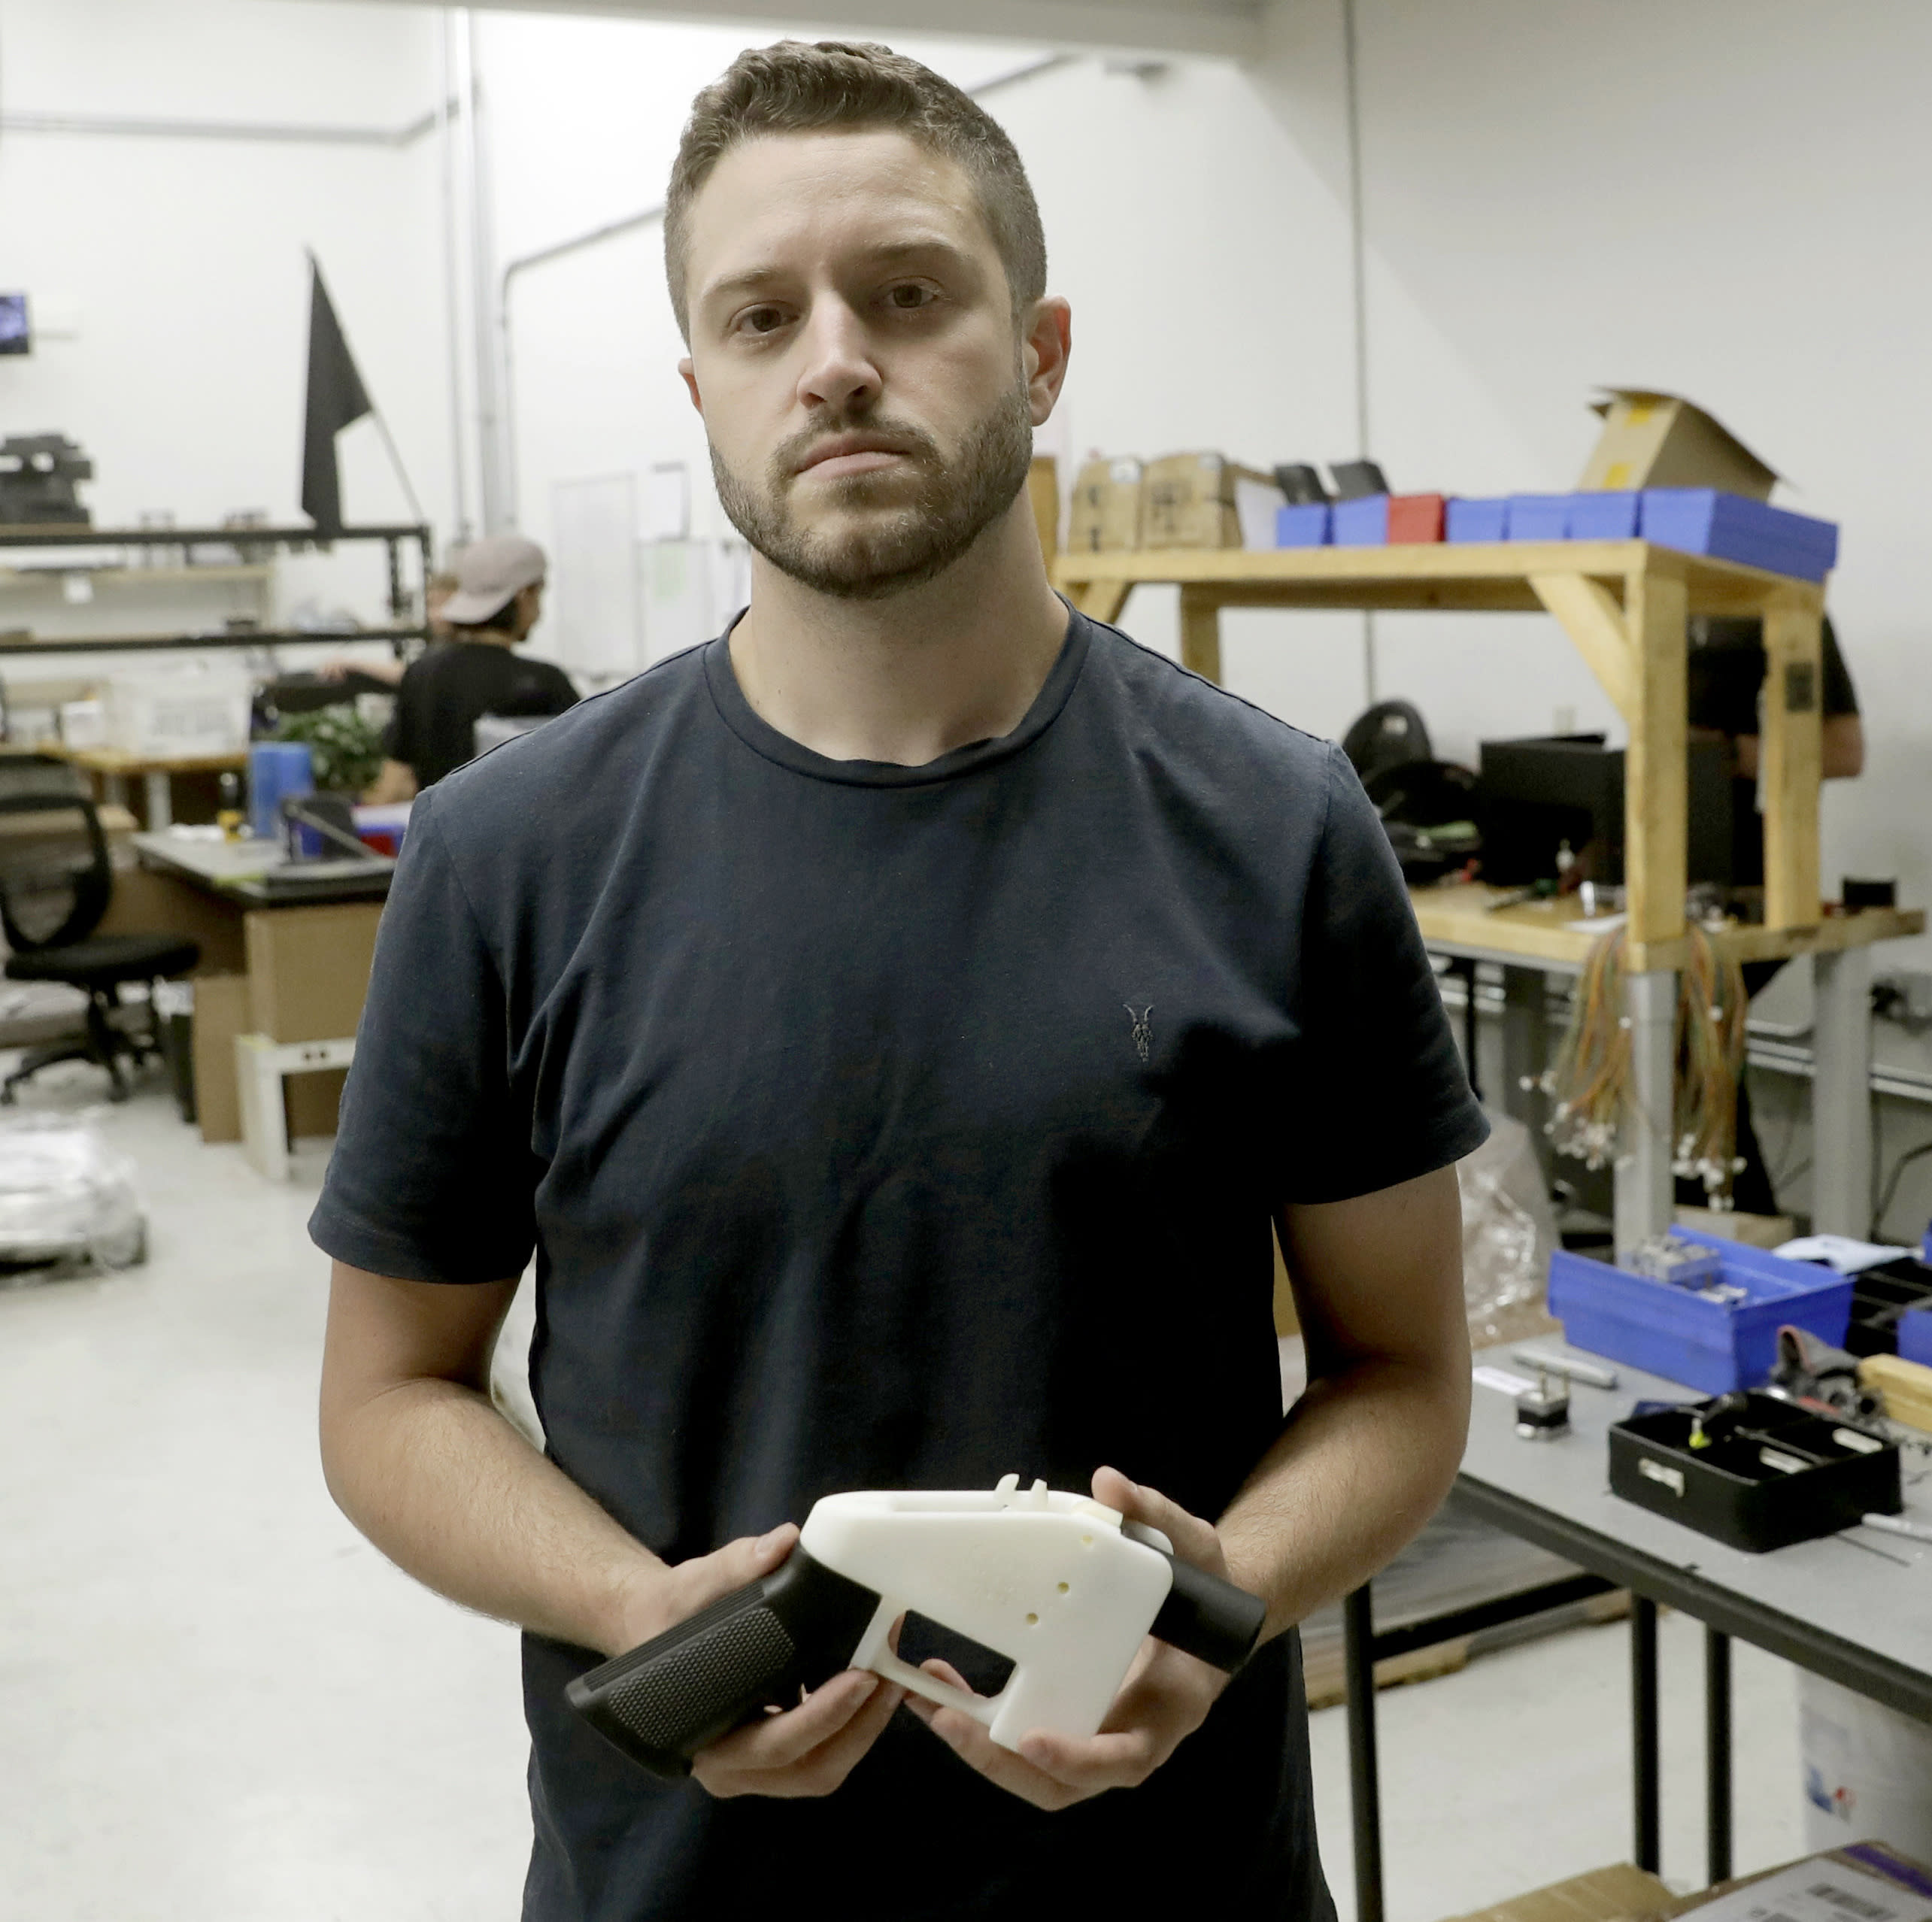 Cody Wilson with Defense Distributed holds a 3D-printed gun called the Liberator at his shop in Austin Texas. For a few hundred dollars tools and some elbow grease you can make your very own rifle or handgun